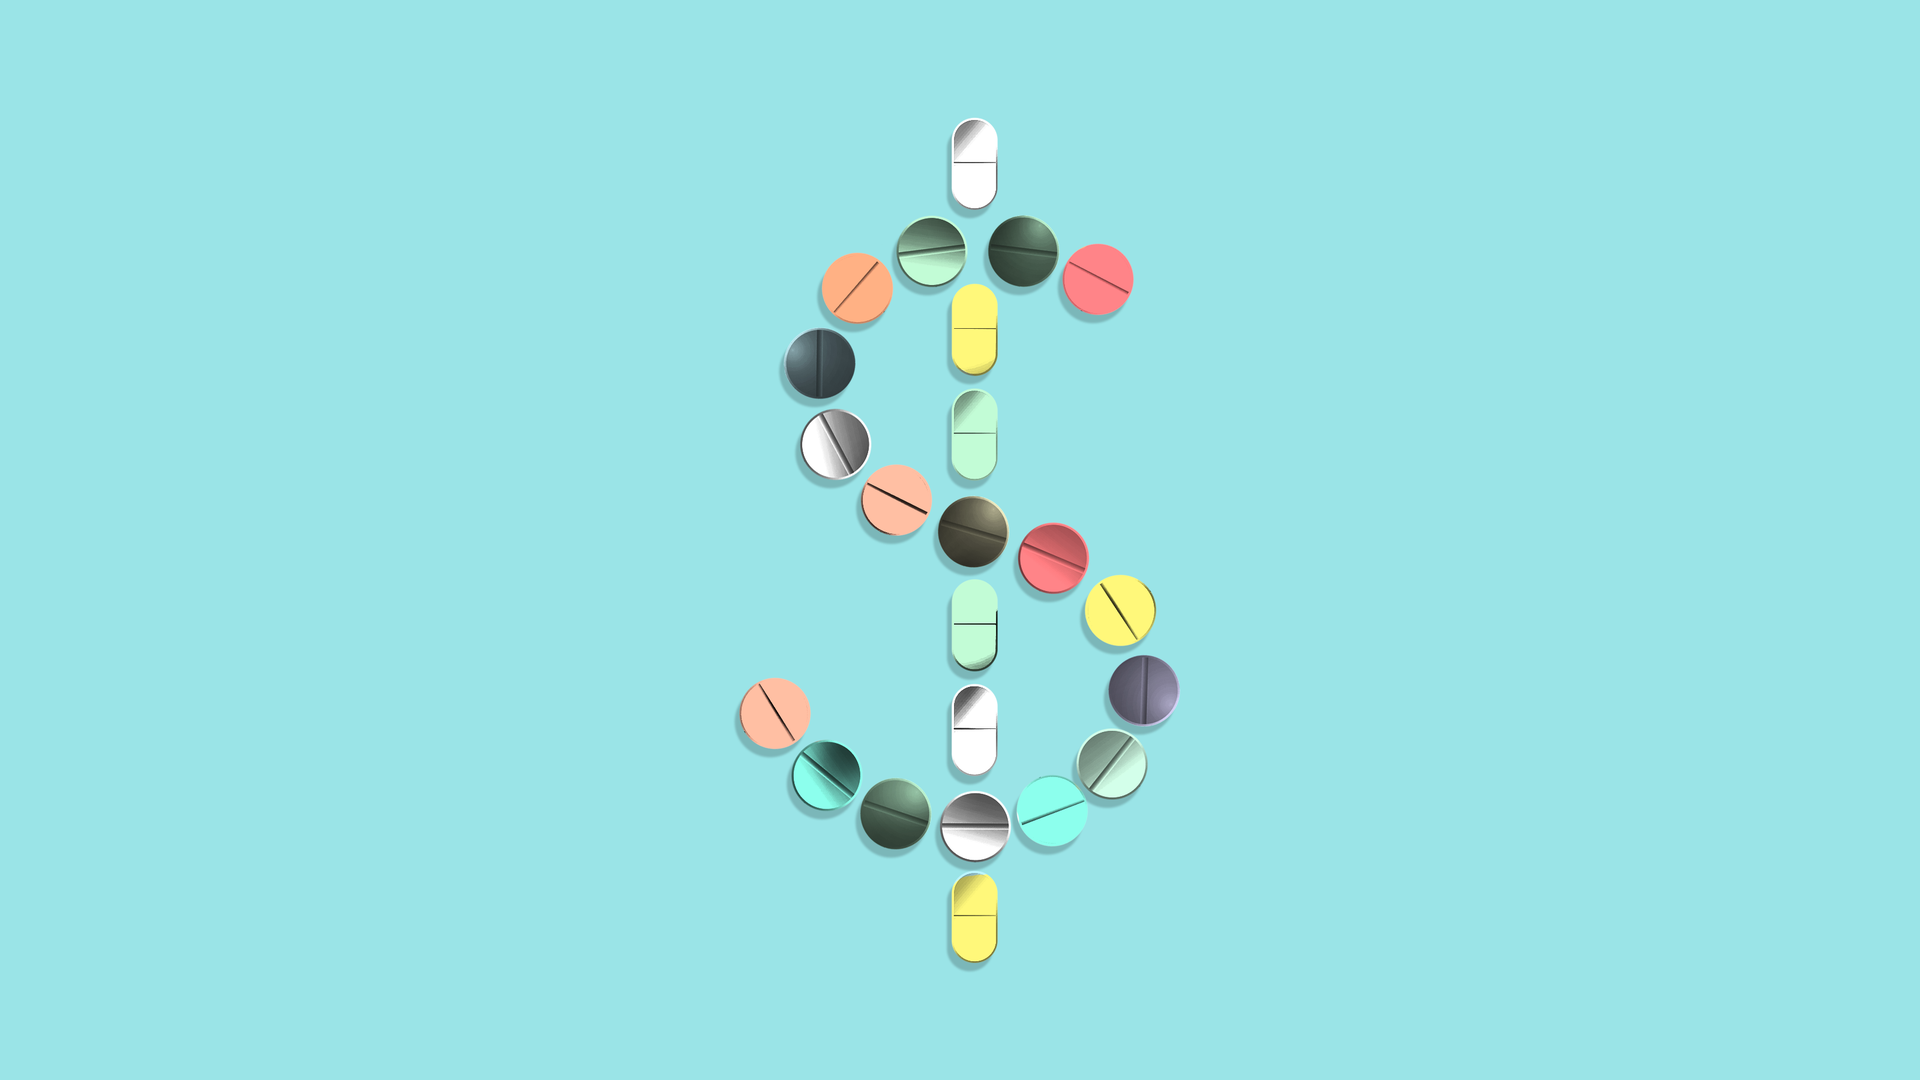 An illustration of a dollar sign and pills.